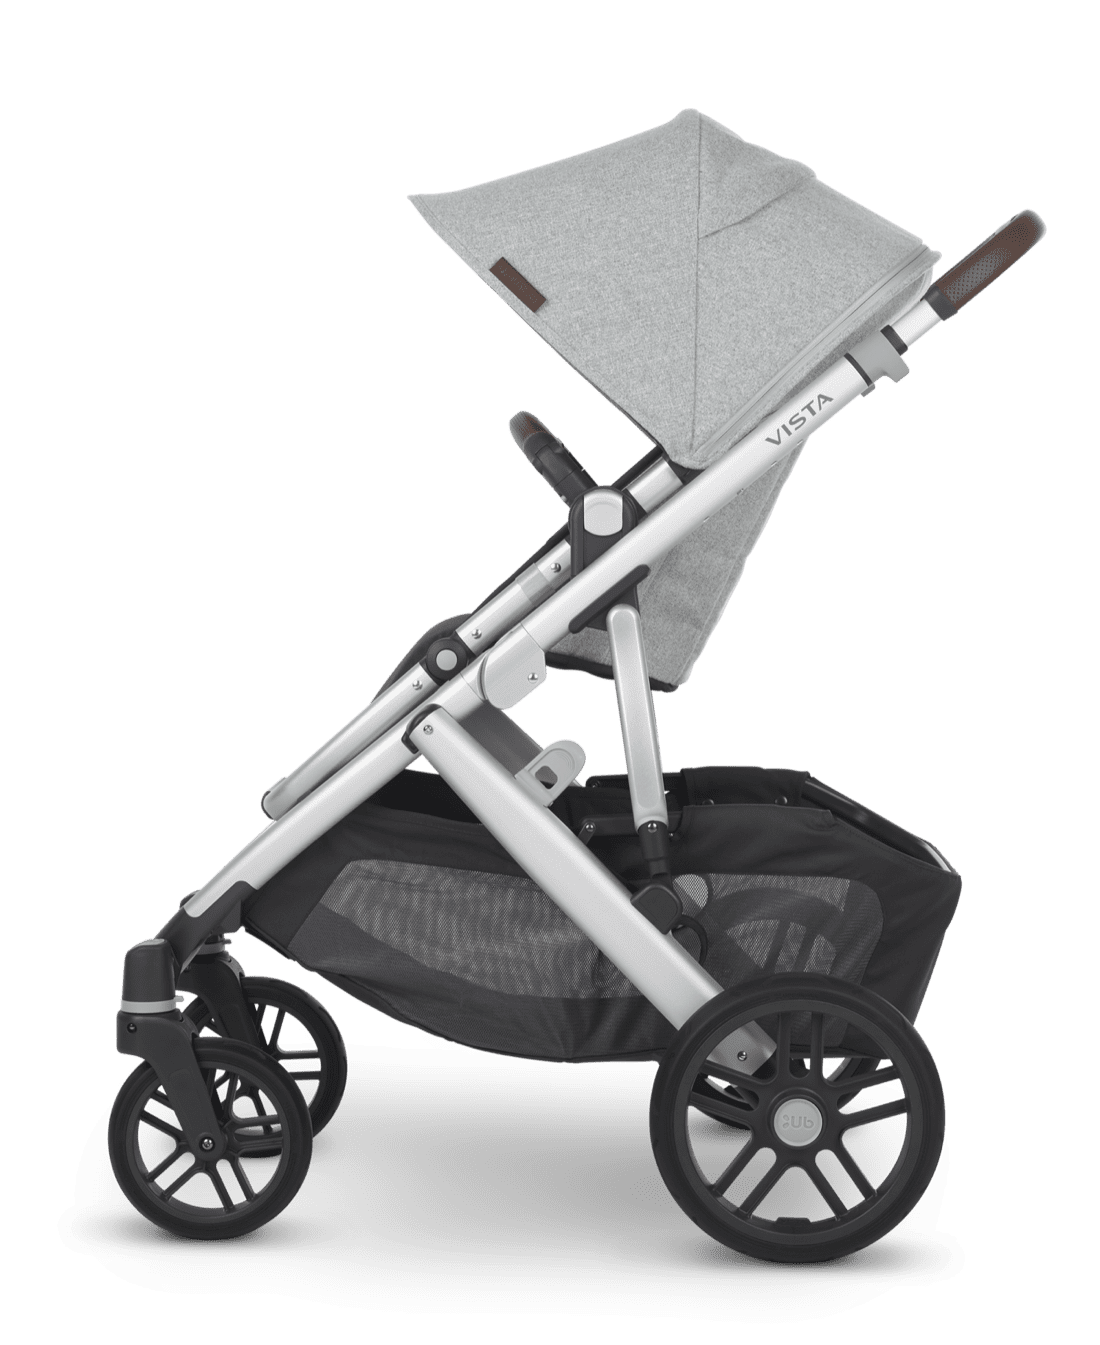 UPPABaby VISTA 2 Stroller & Carry Cot – STELLA product image